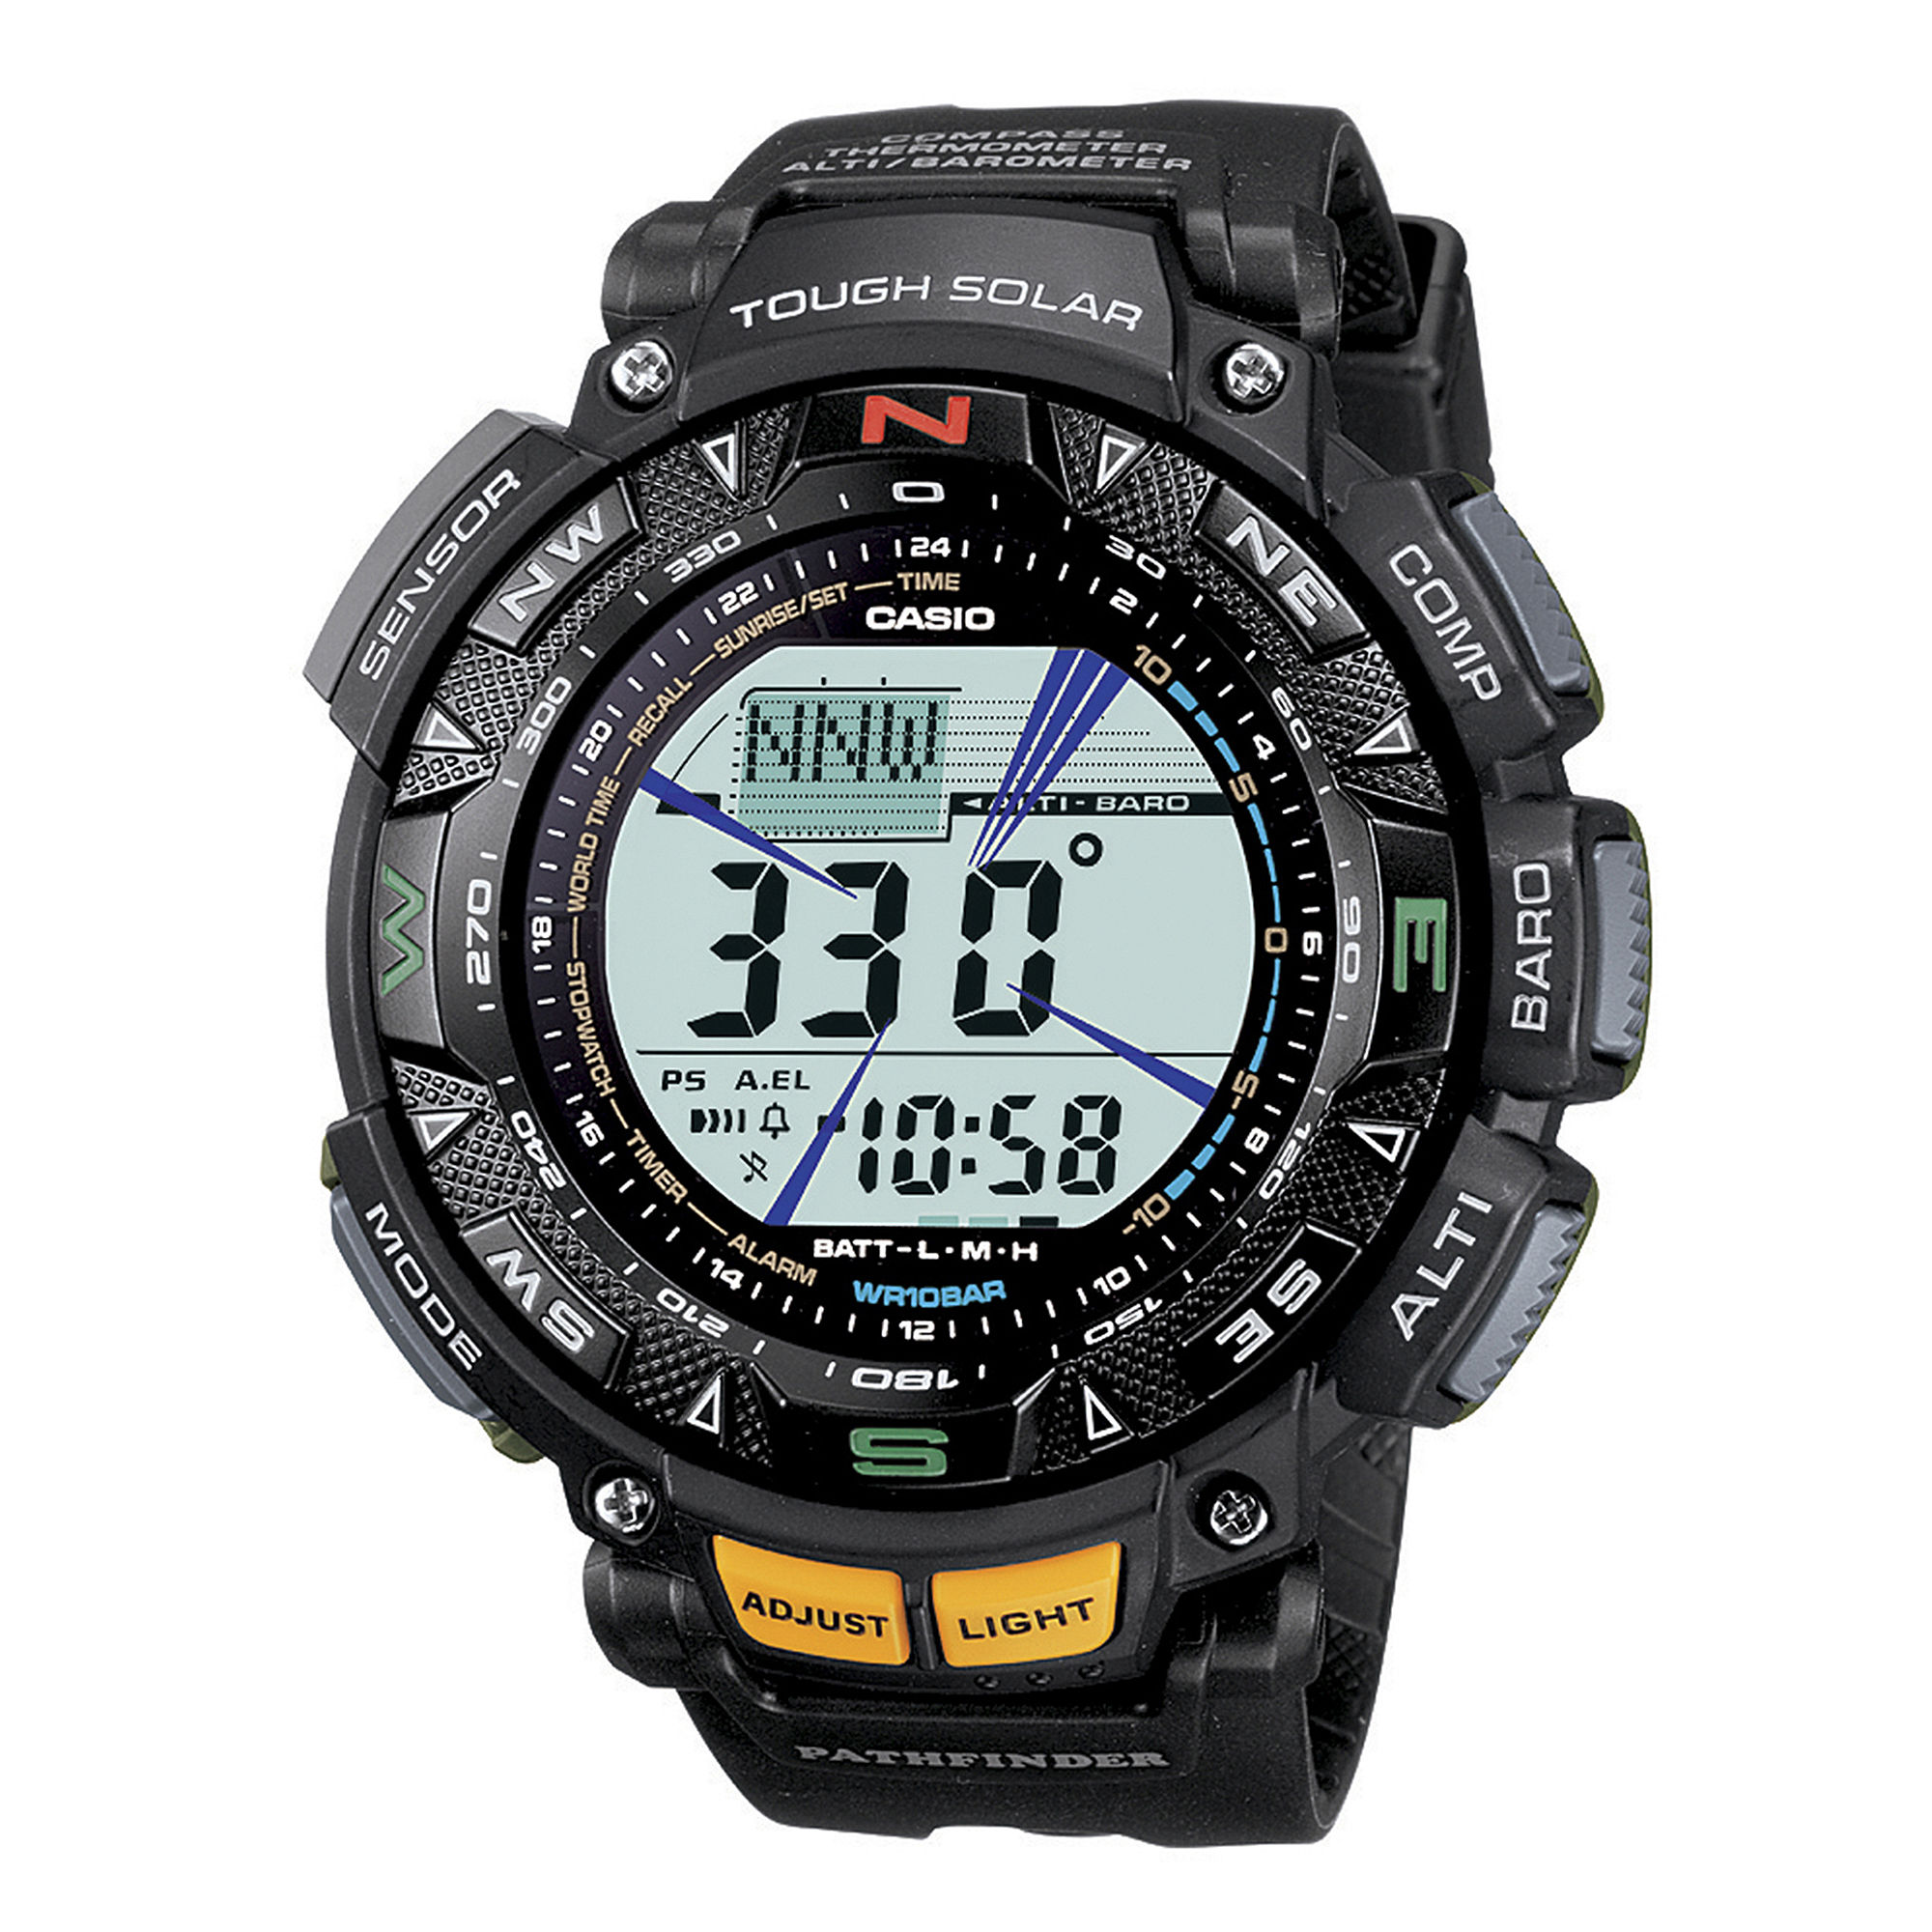 Casio Pathfinder Tough Solar Triple Sensor Mens Black Resin Watch PAG240-1CR